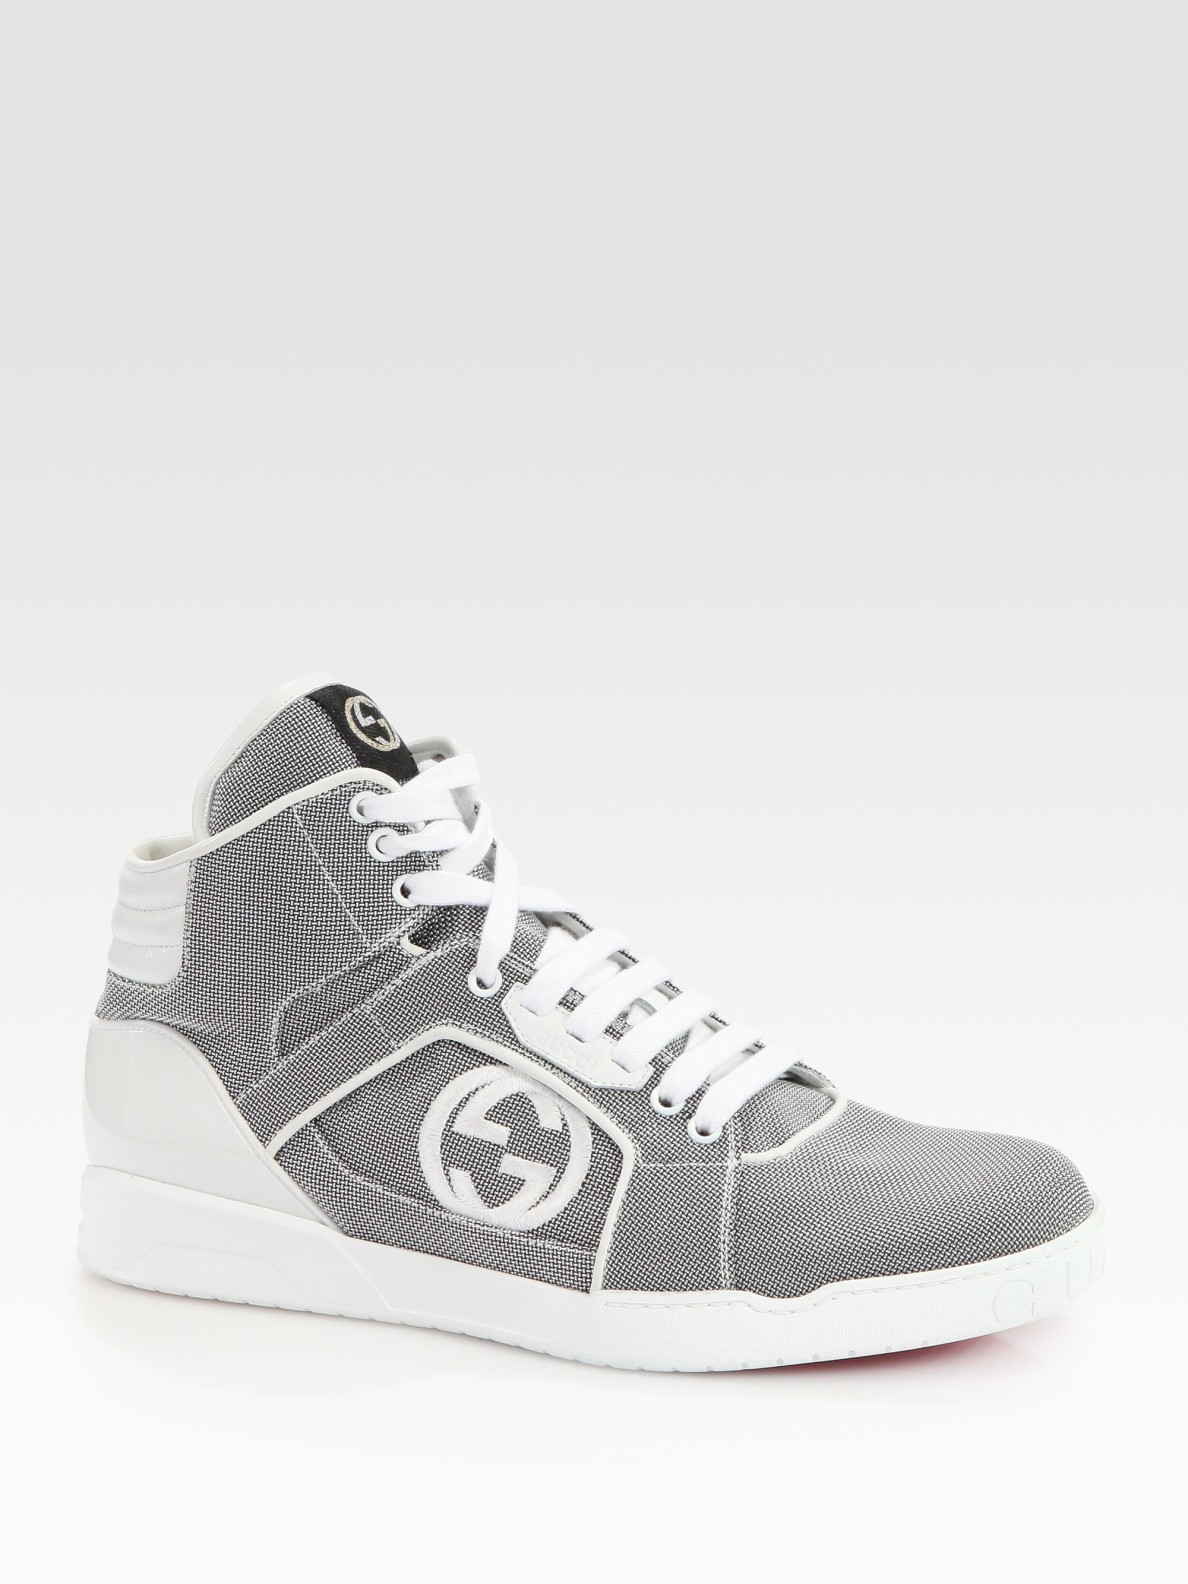 Lyst Gucci Rebound Mid Hightop Sneakers In Gray For Men